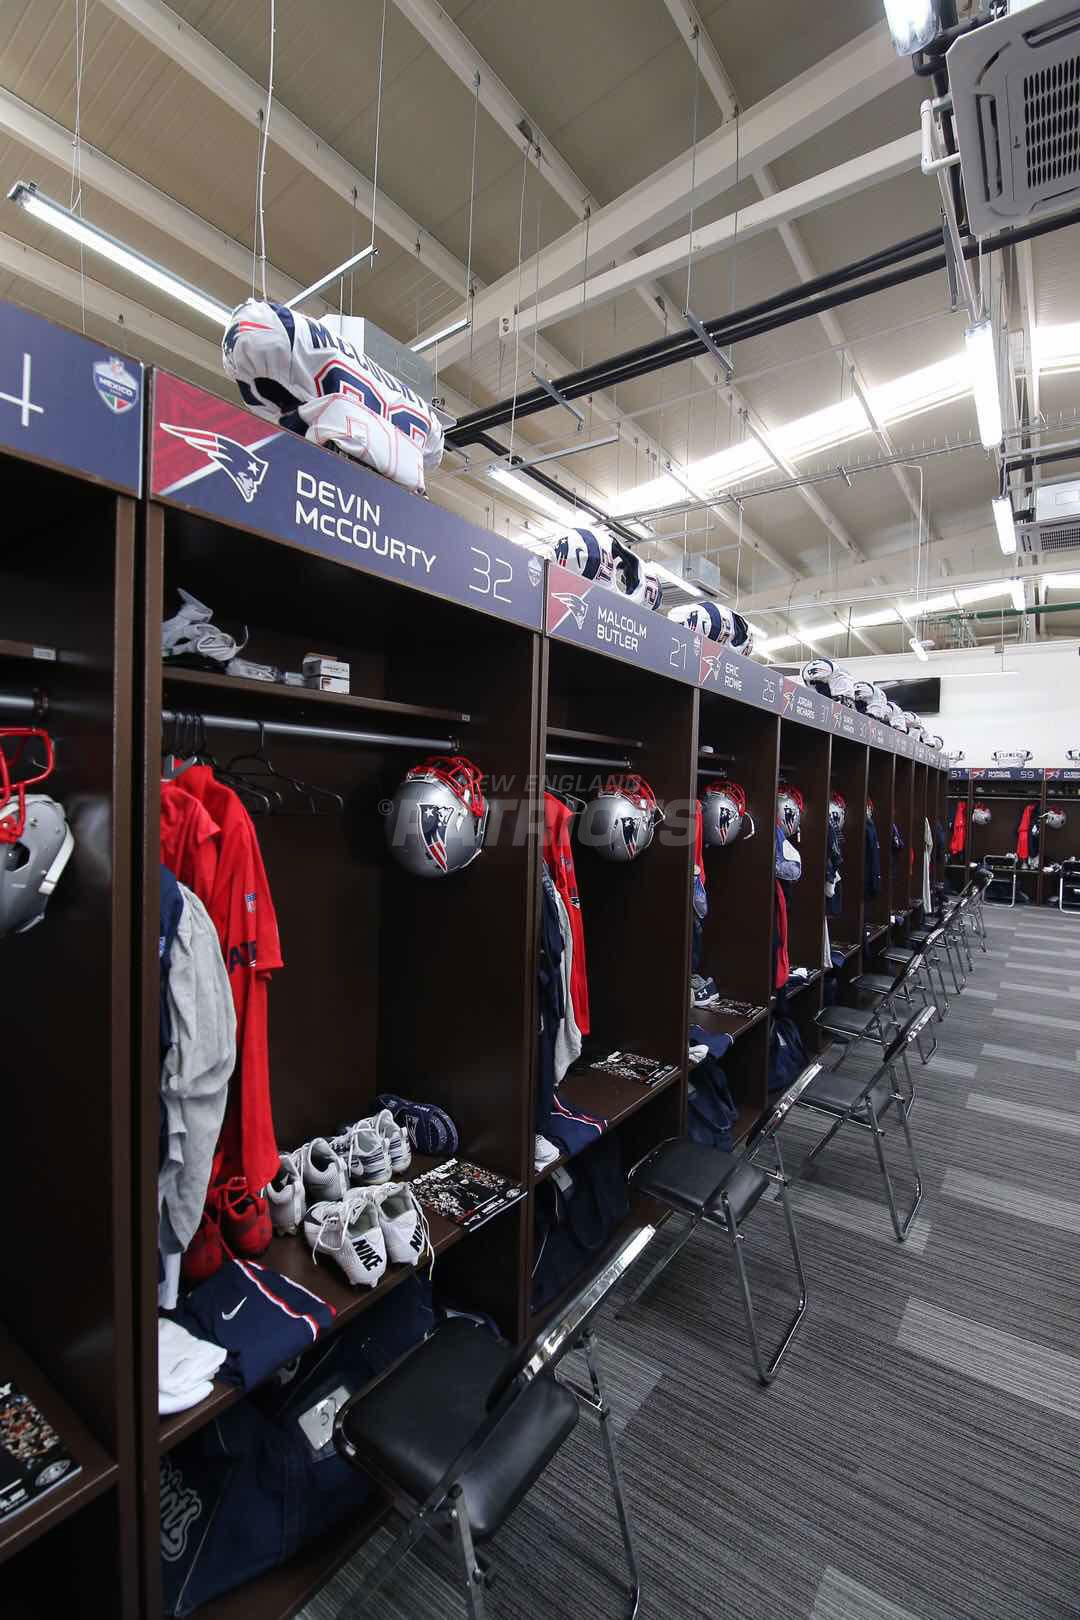 Pregame Inside The Patriots Locker Room And Player Arrivals 11 19 Locker Room Lockers Patriots